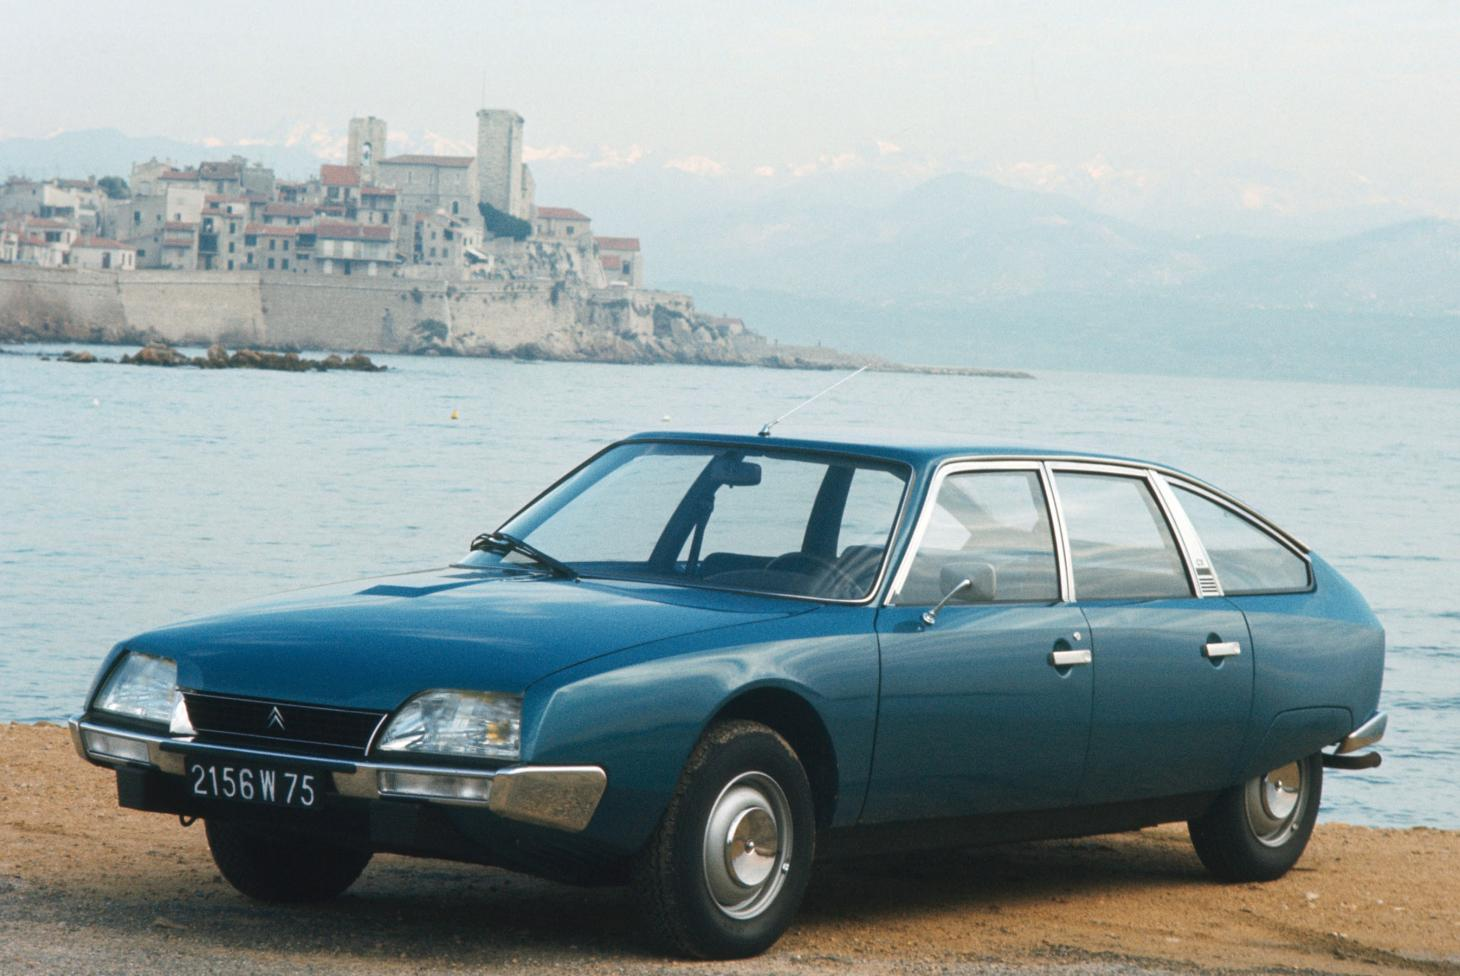 An early Citroen CX, introduced in 1974